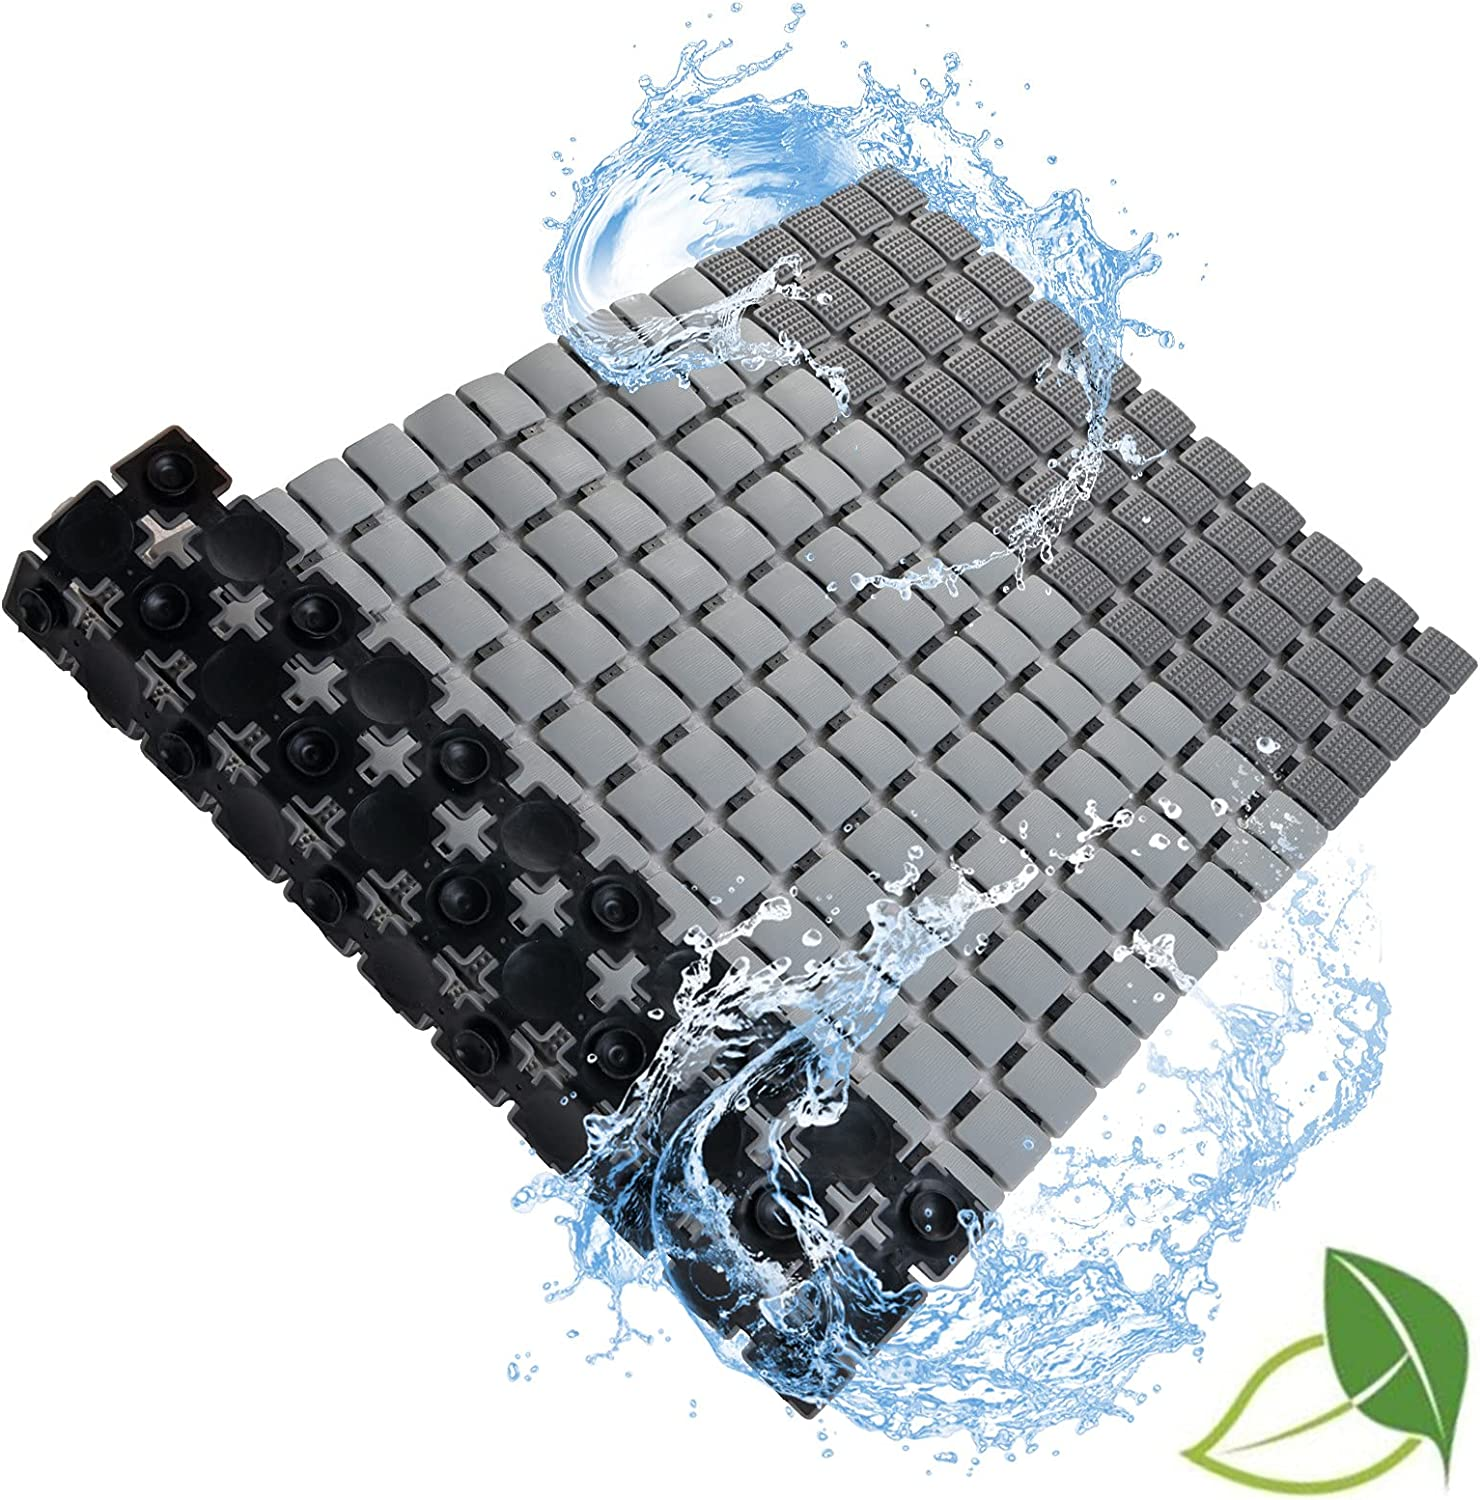 Bath Tub Mat Super beauty product restock quality top RXPULXY Non Slip Ba Free shipping anywhere in the nation with Cups Suction Shower Mats